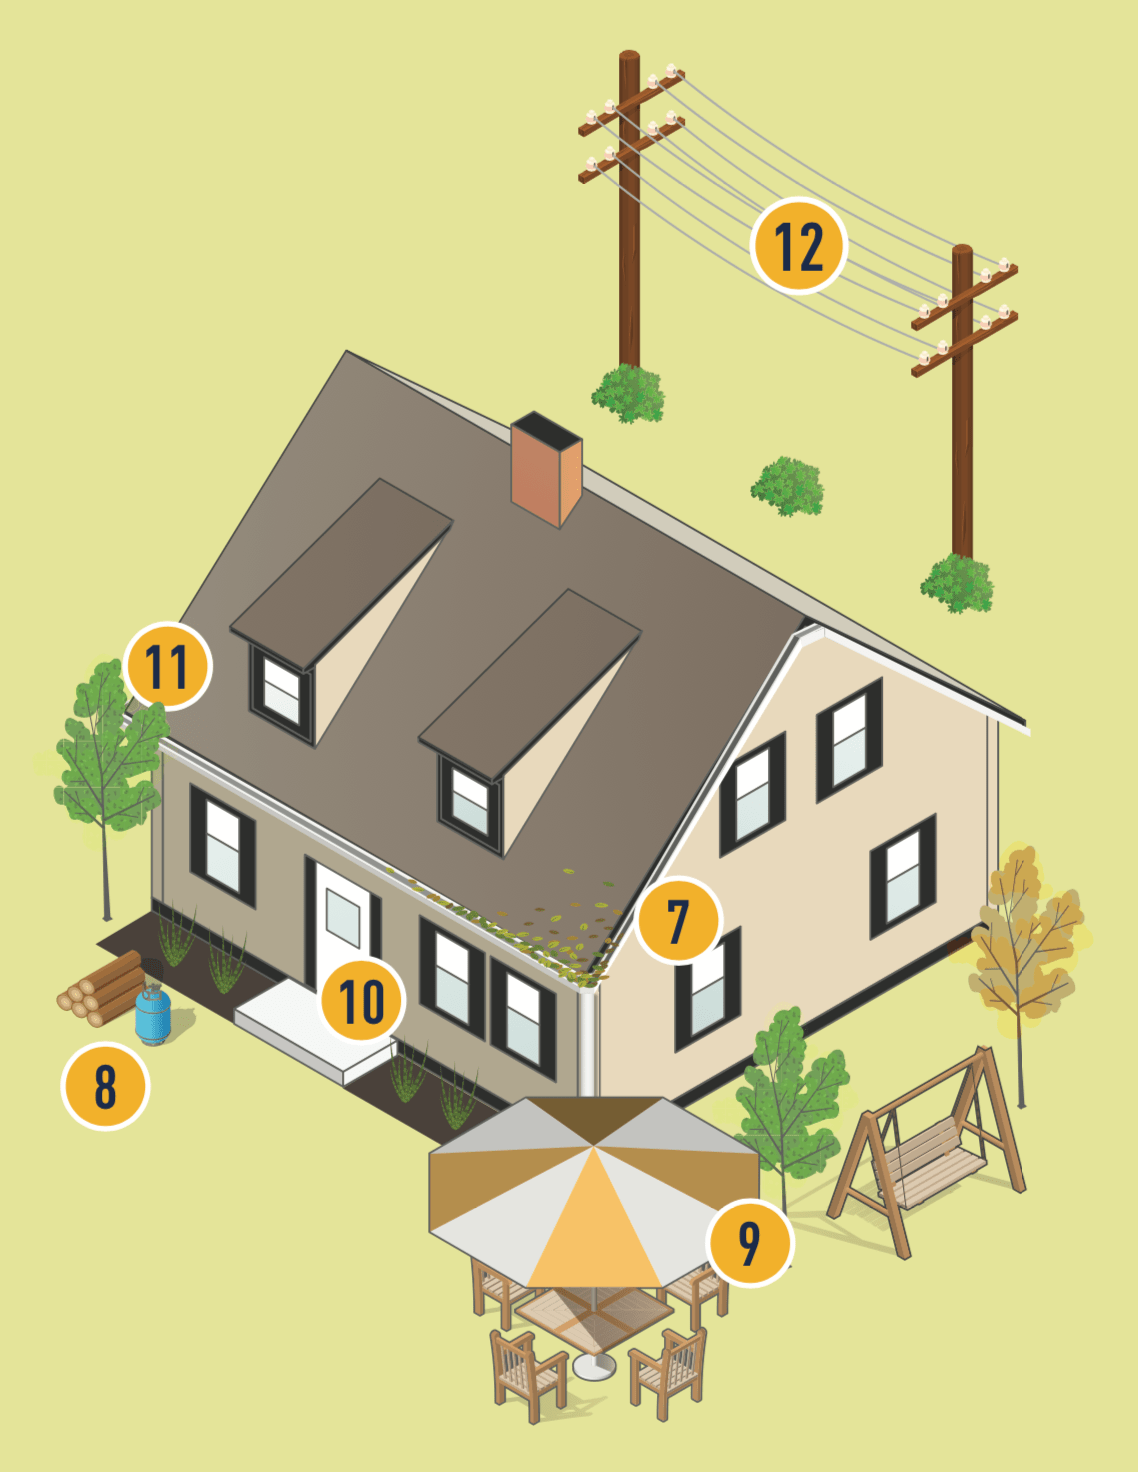 Illustration of a home with key defensible spaces to protect in case of a wildfire marked with numbers